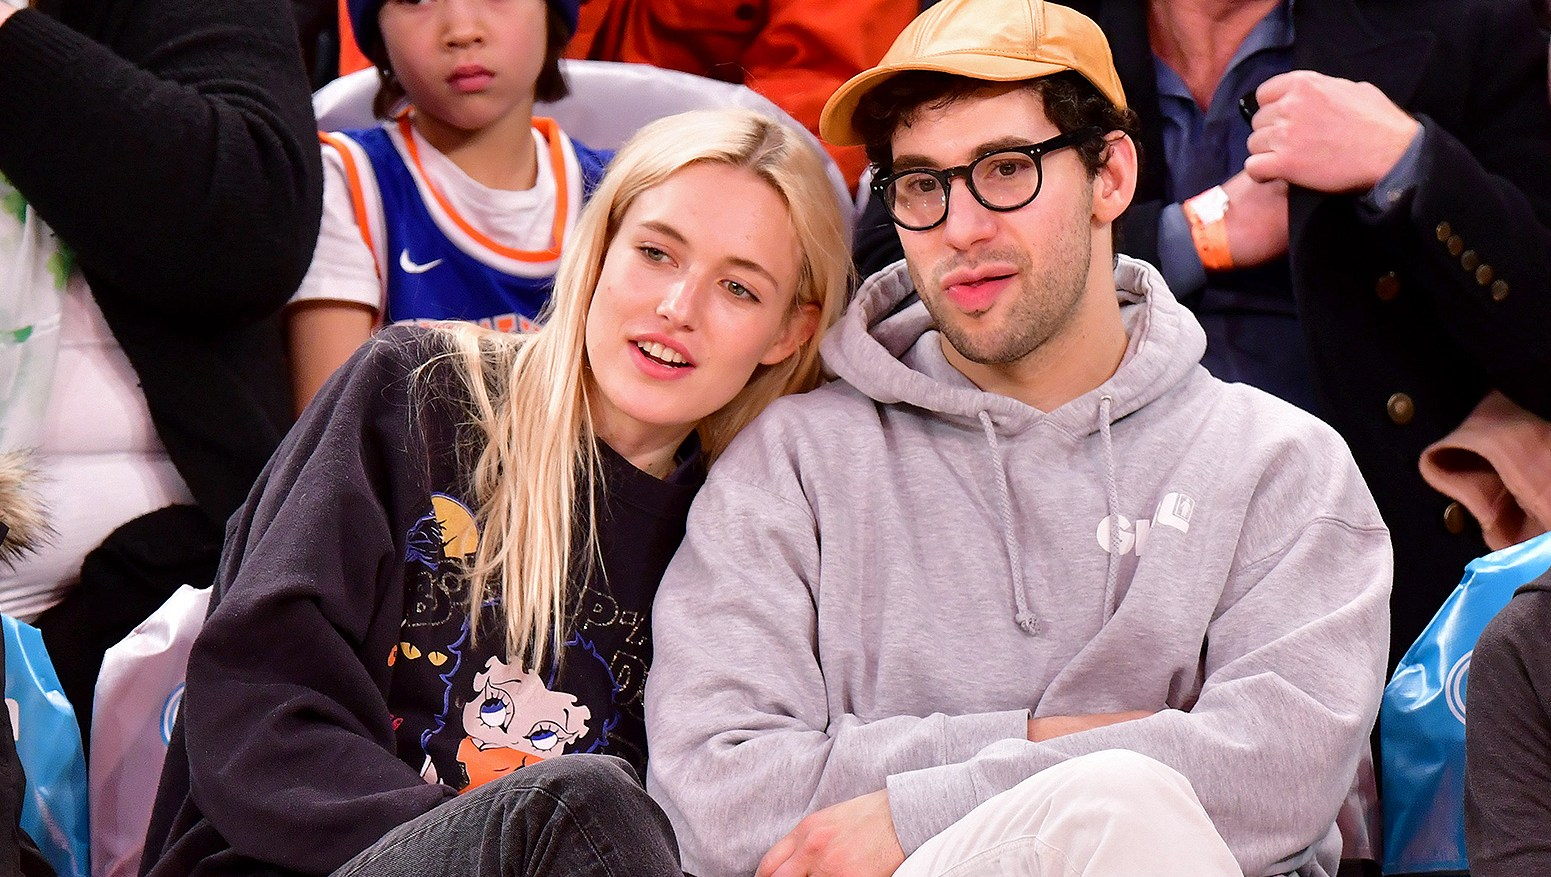 Carlotta Kohl, Jack Antonoff, Courtside, New York Knicks, Charlotte Hornets, NBA Game